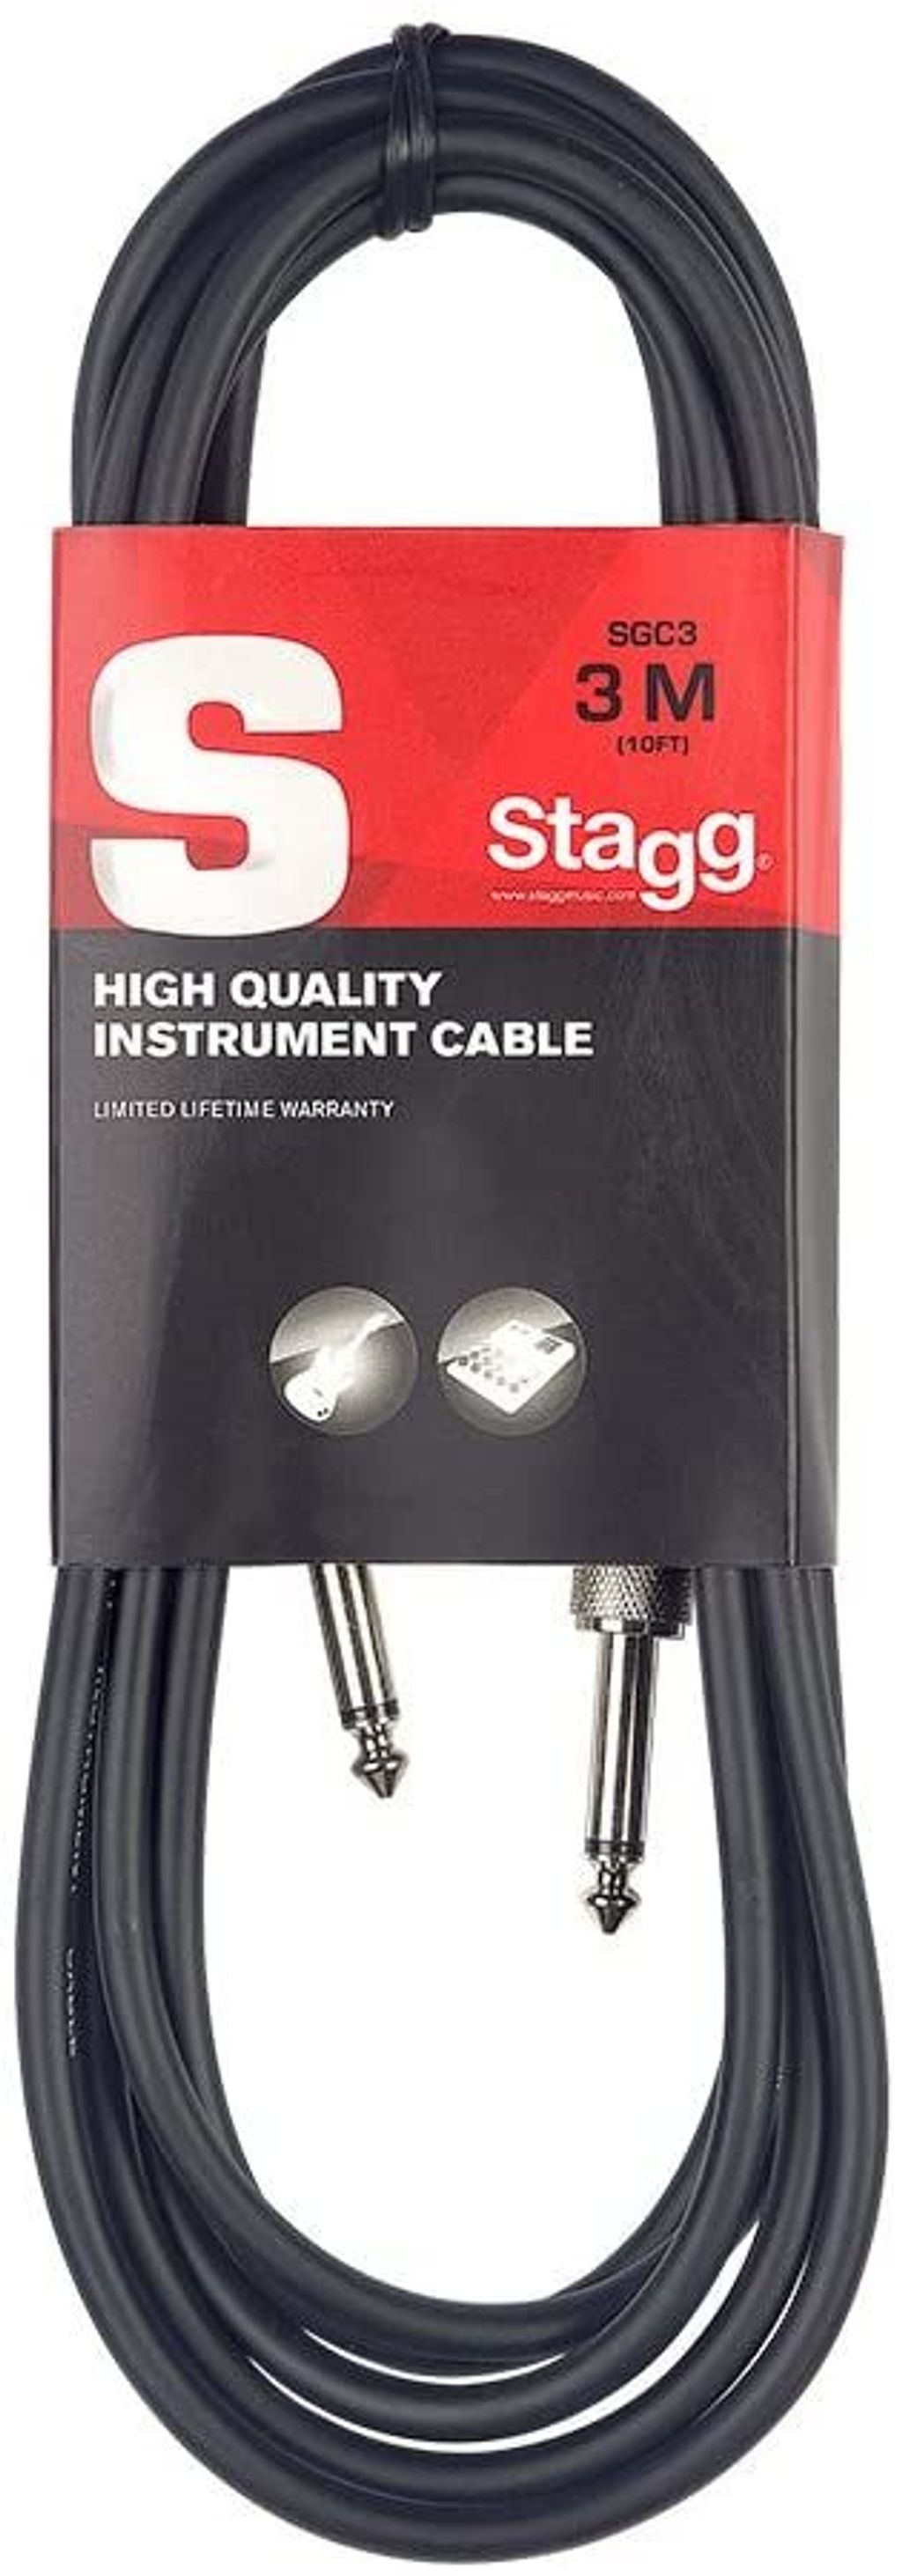 3M Stagg Instrument Cable.jpg